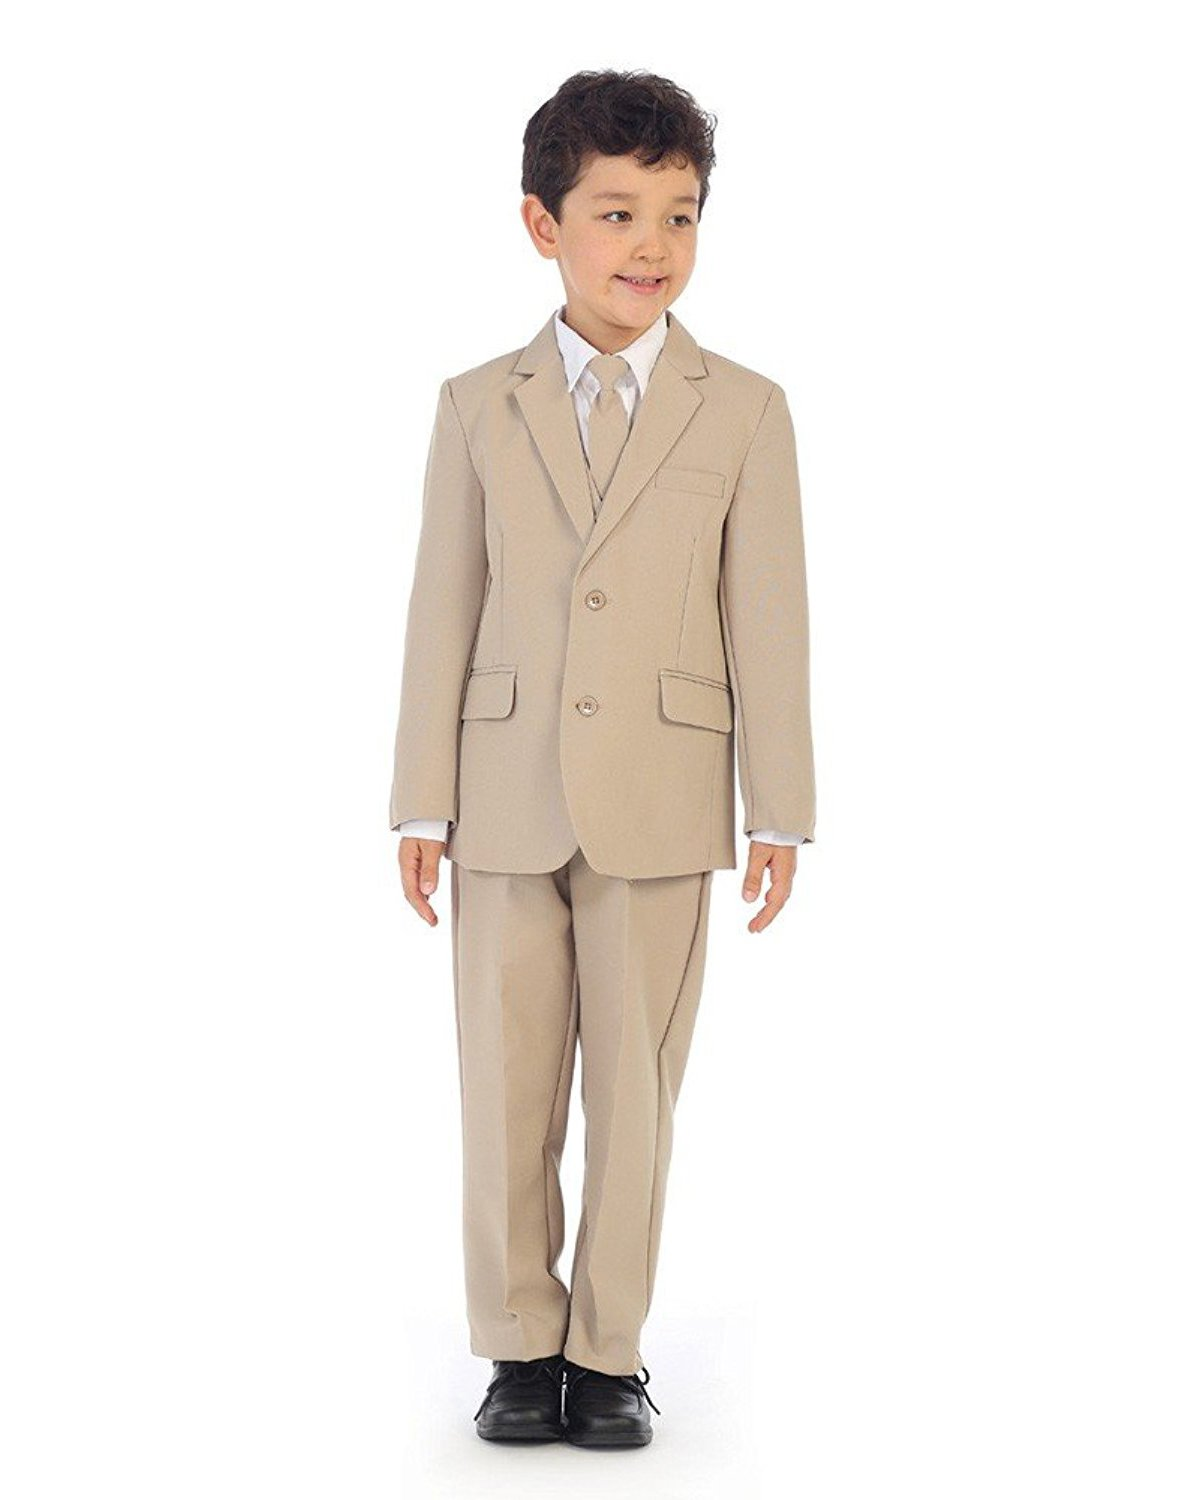 iGirldress Boys Slim Fit 5-Piece Formal Suit Set with Matching Neck Tie Khaki Size 10